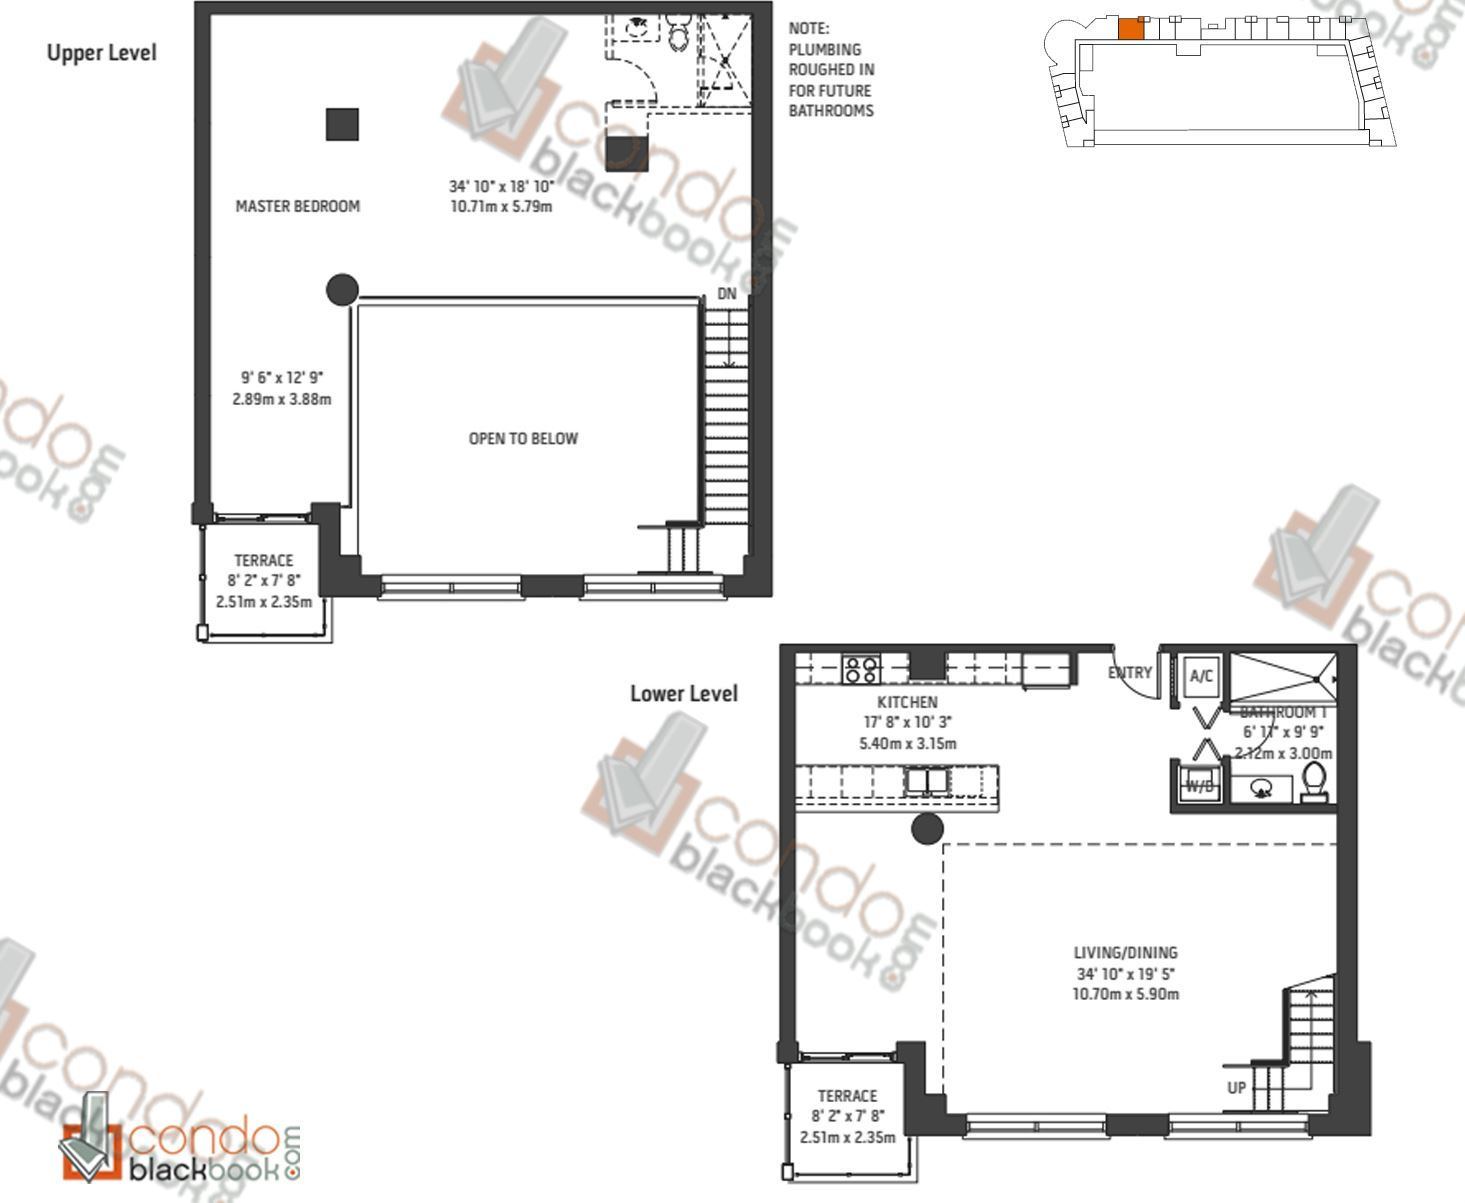 Floor plan for Midblock Condominium Midtown Miami, model Unit L8, line 08, 0/1 bedrooms, 1,954 sq ft